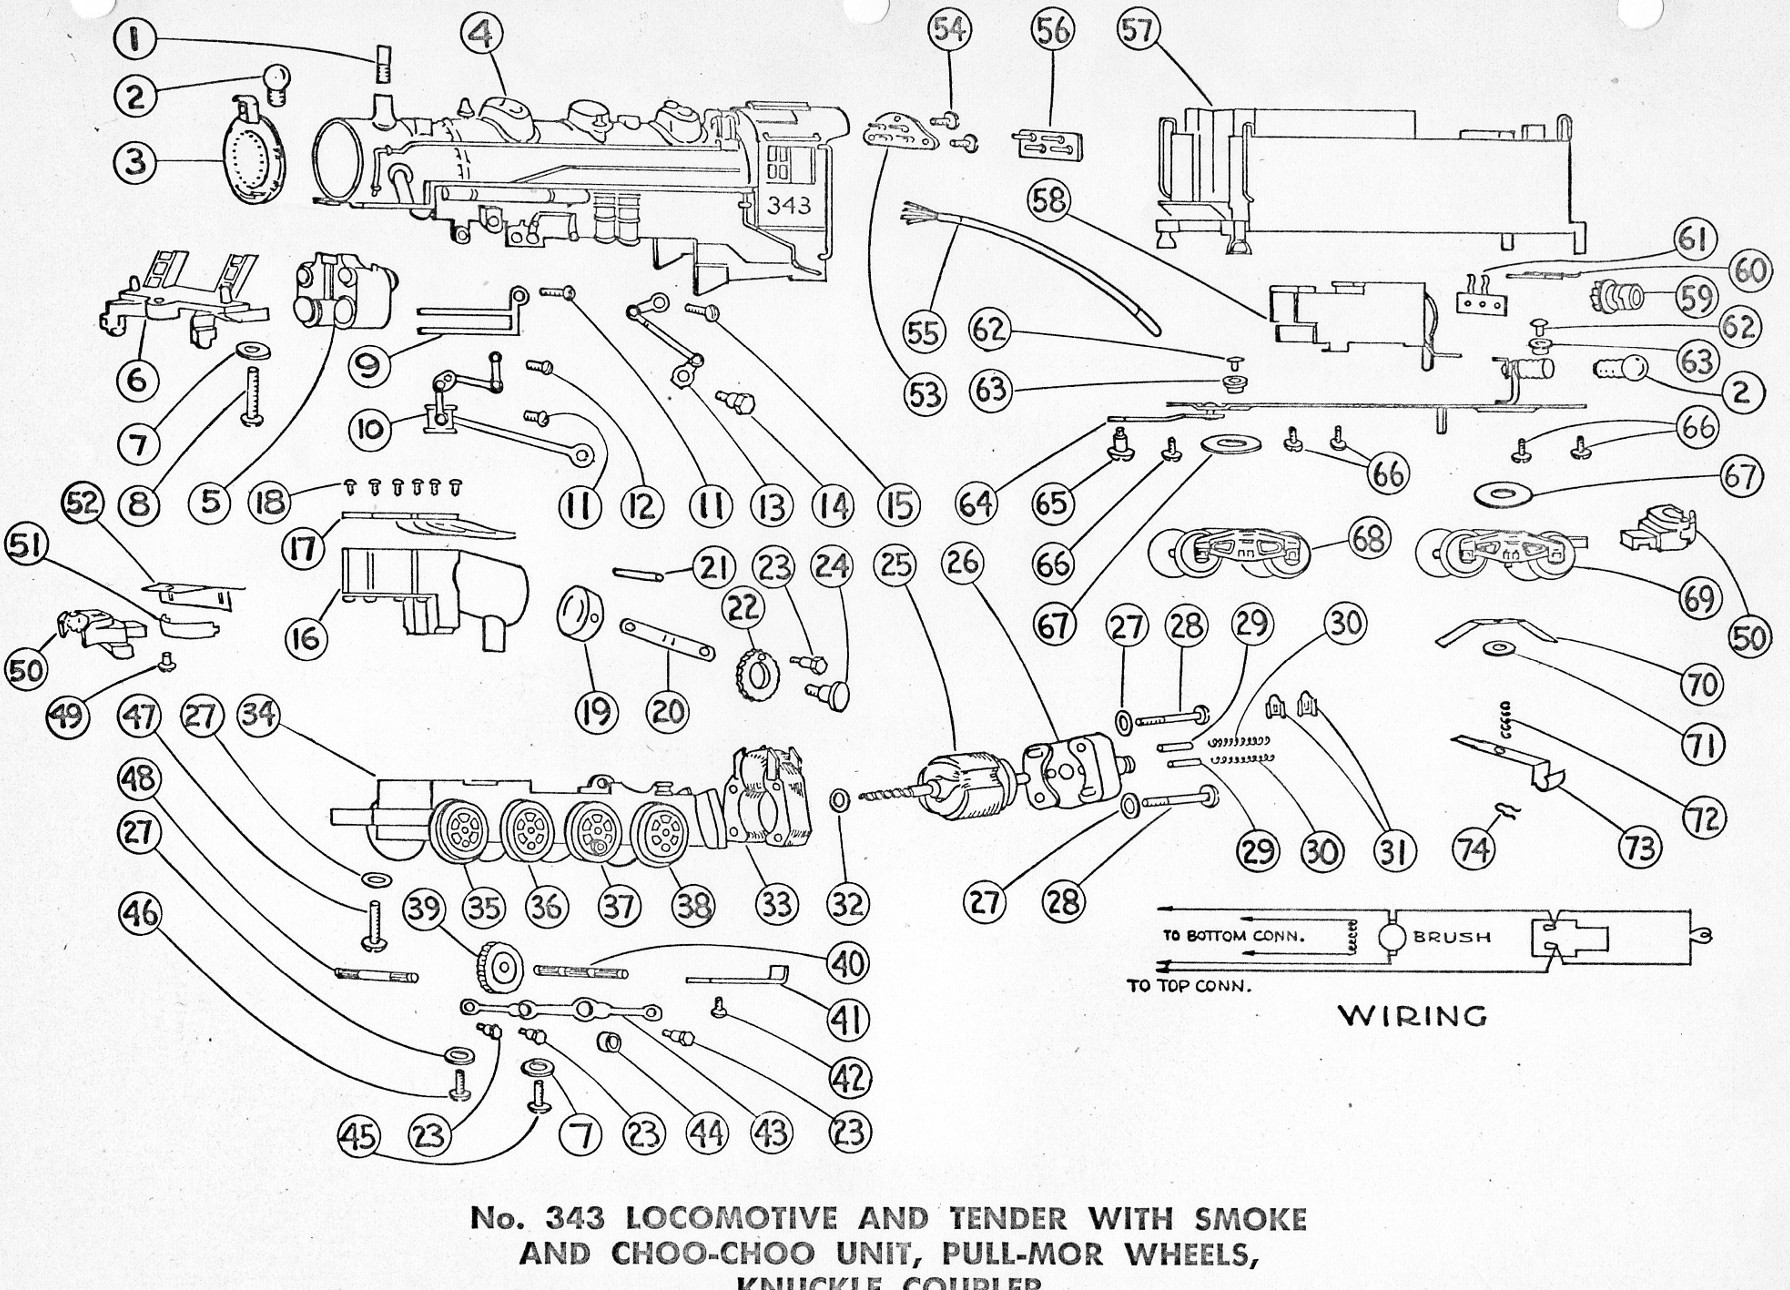 American Flyer Locomotive & Tender 343 Parts List & Diagram - Page 2